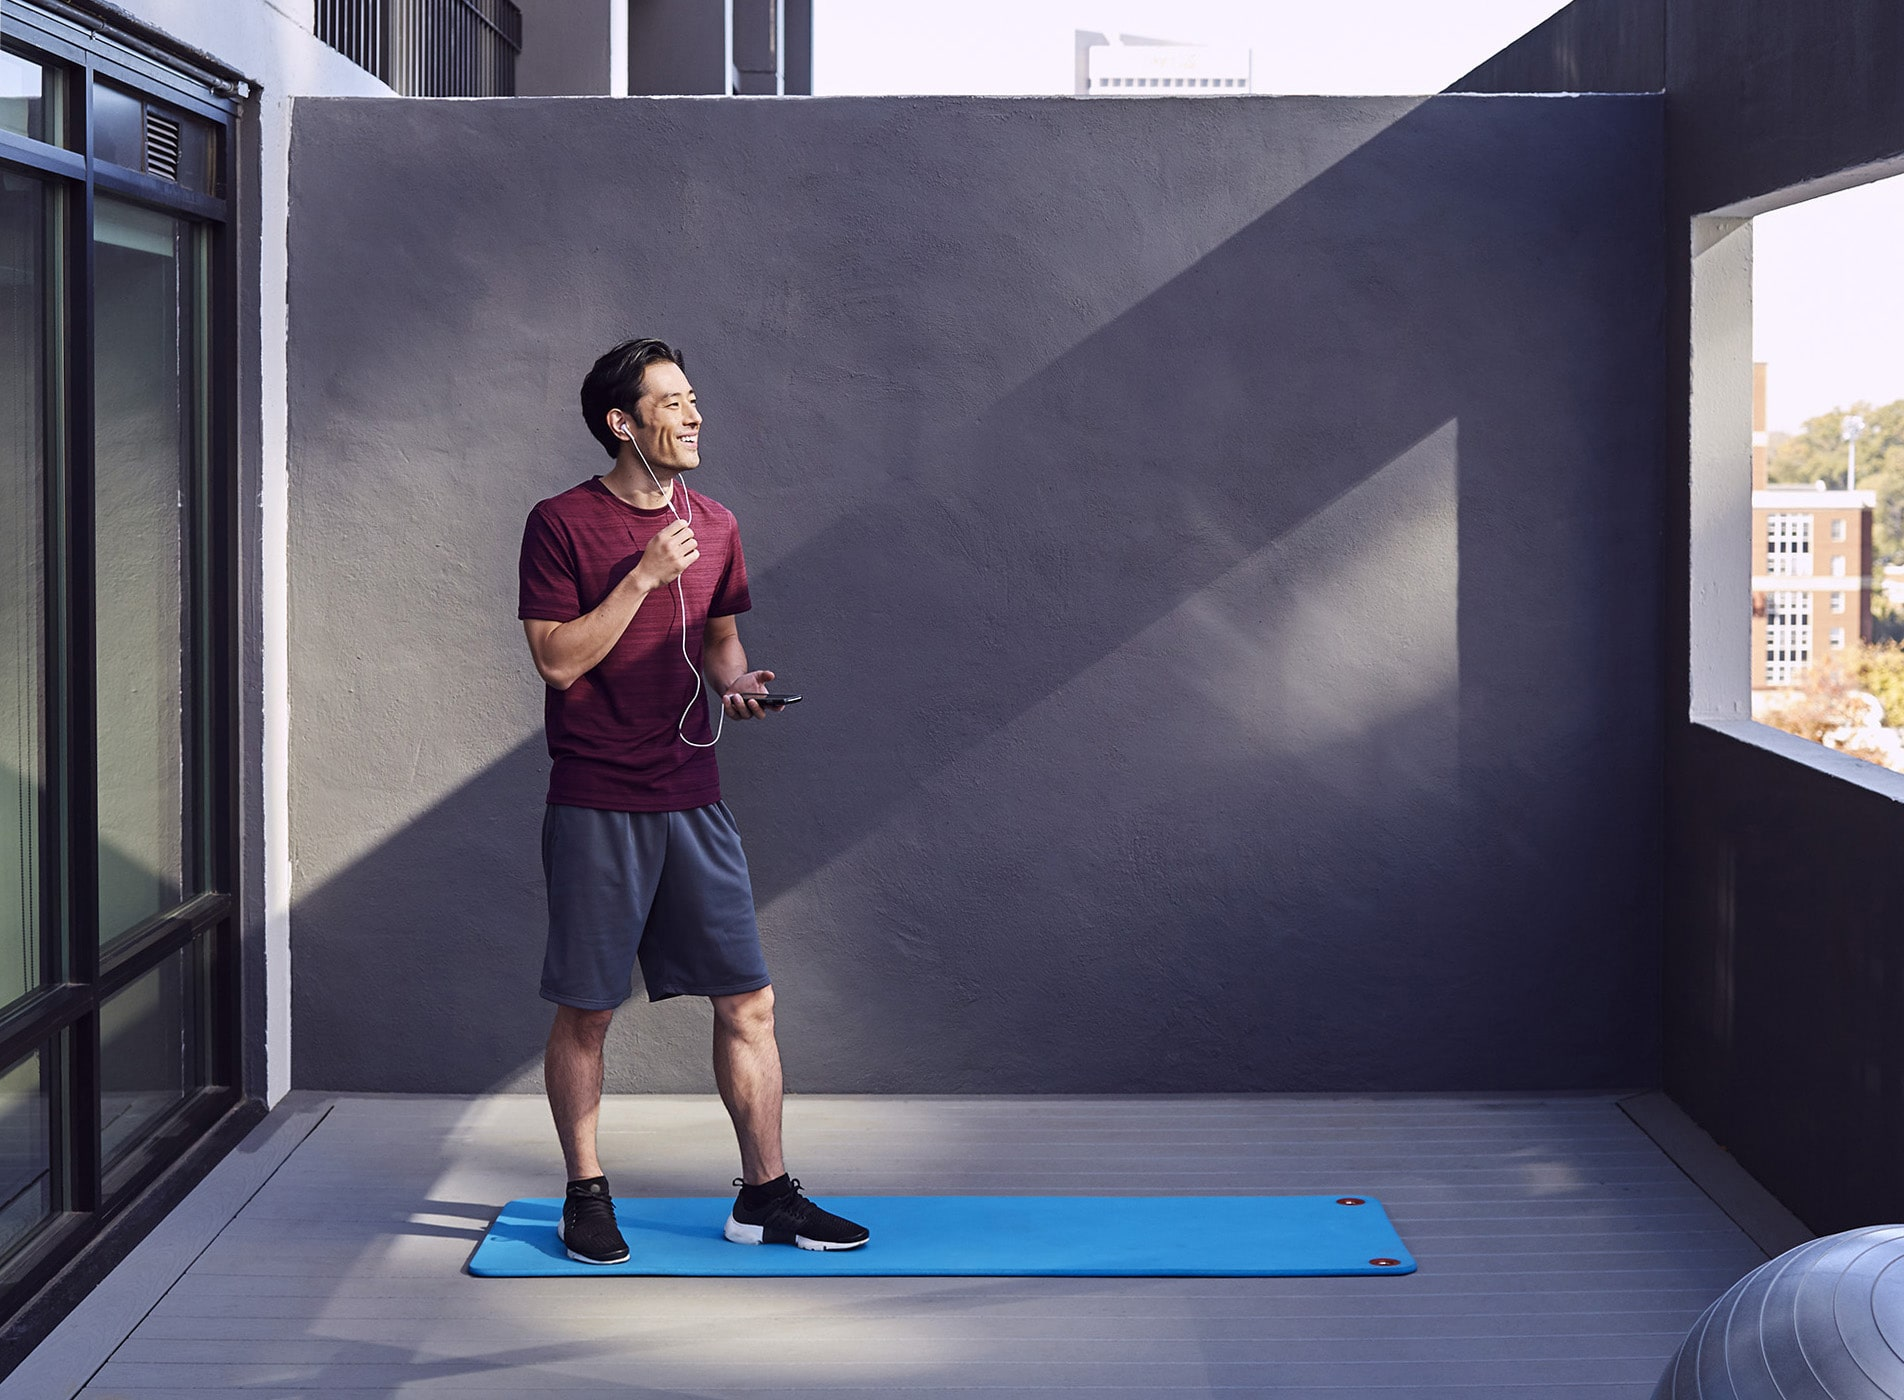 A man on the patio of a hotel room doing yoga on a blue mat while also talking on the phone.